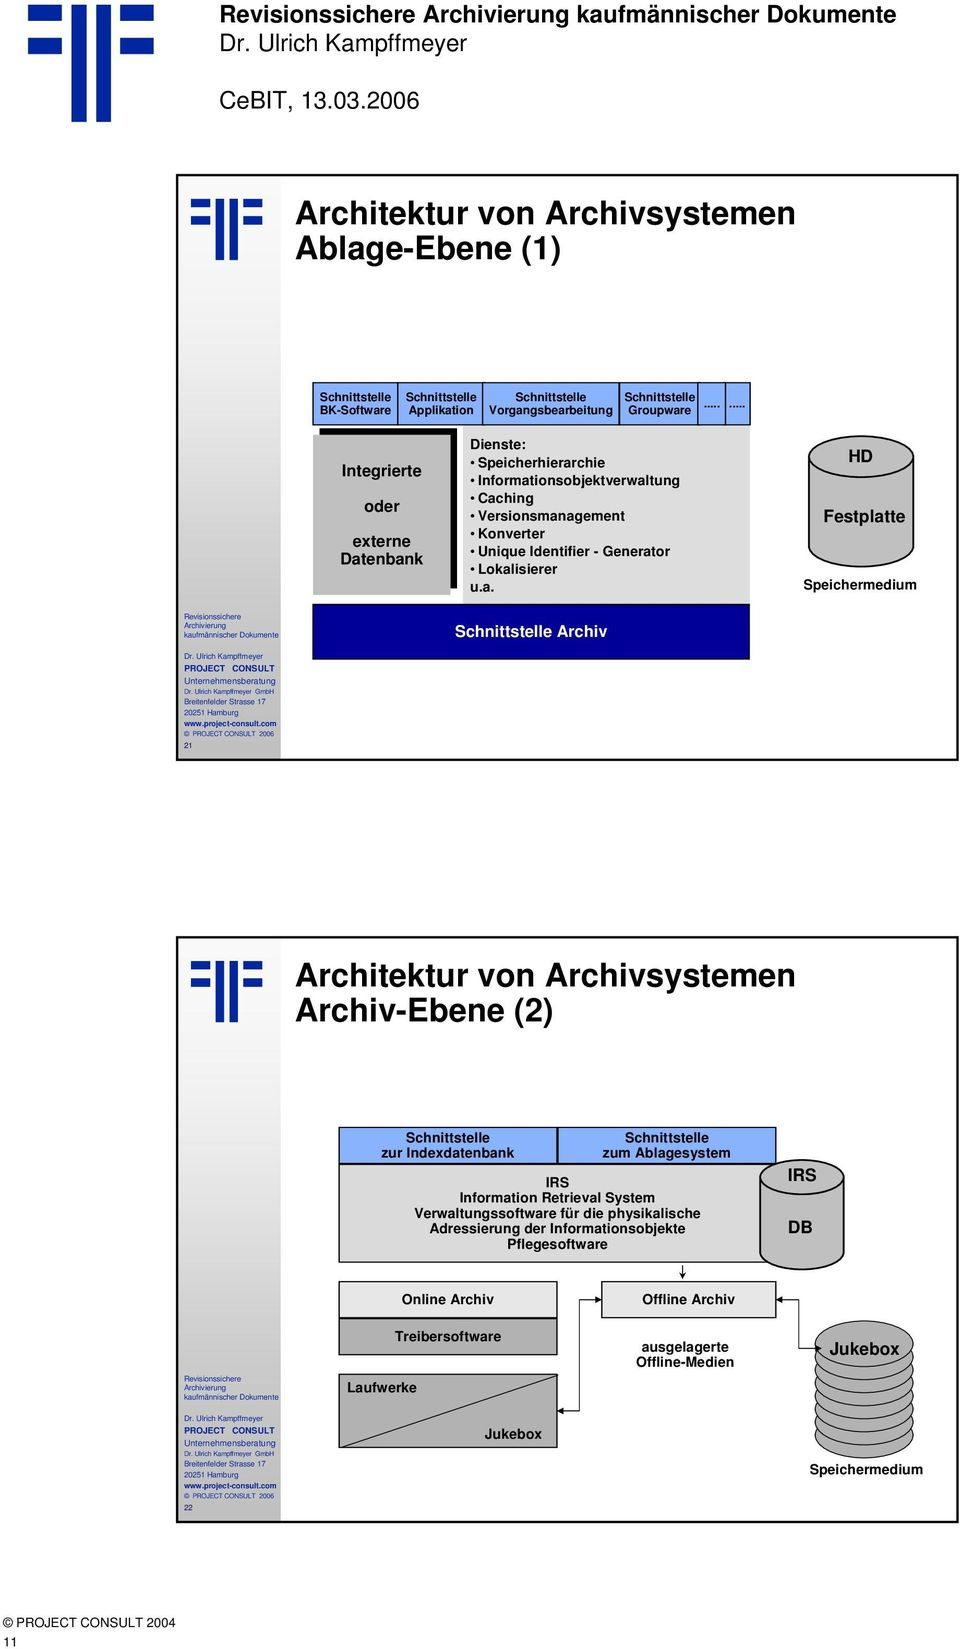 ..... Integrierte Integrierte oder oder externe externe Datenbank Datenbank Dienste: Speicherhierarchie Informationsobjektverwaltung Caching Versionsmanagement Konverter Unique Identifier - Generator